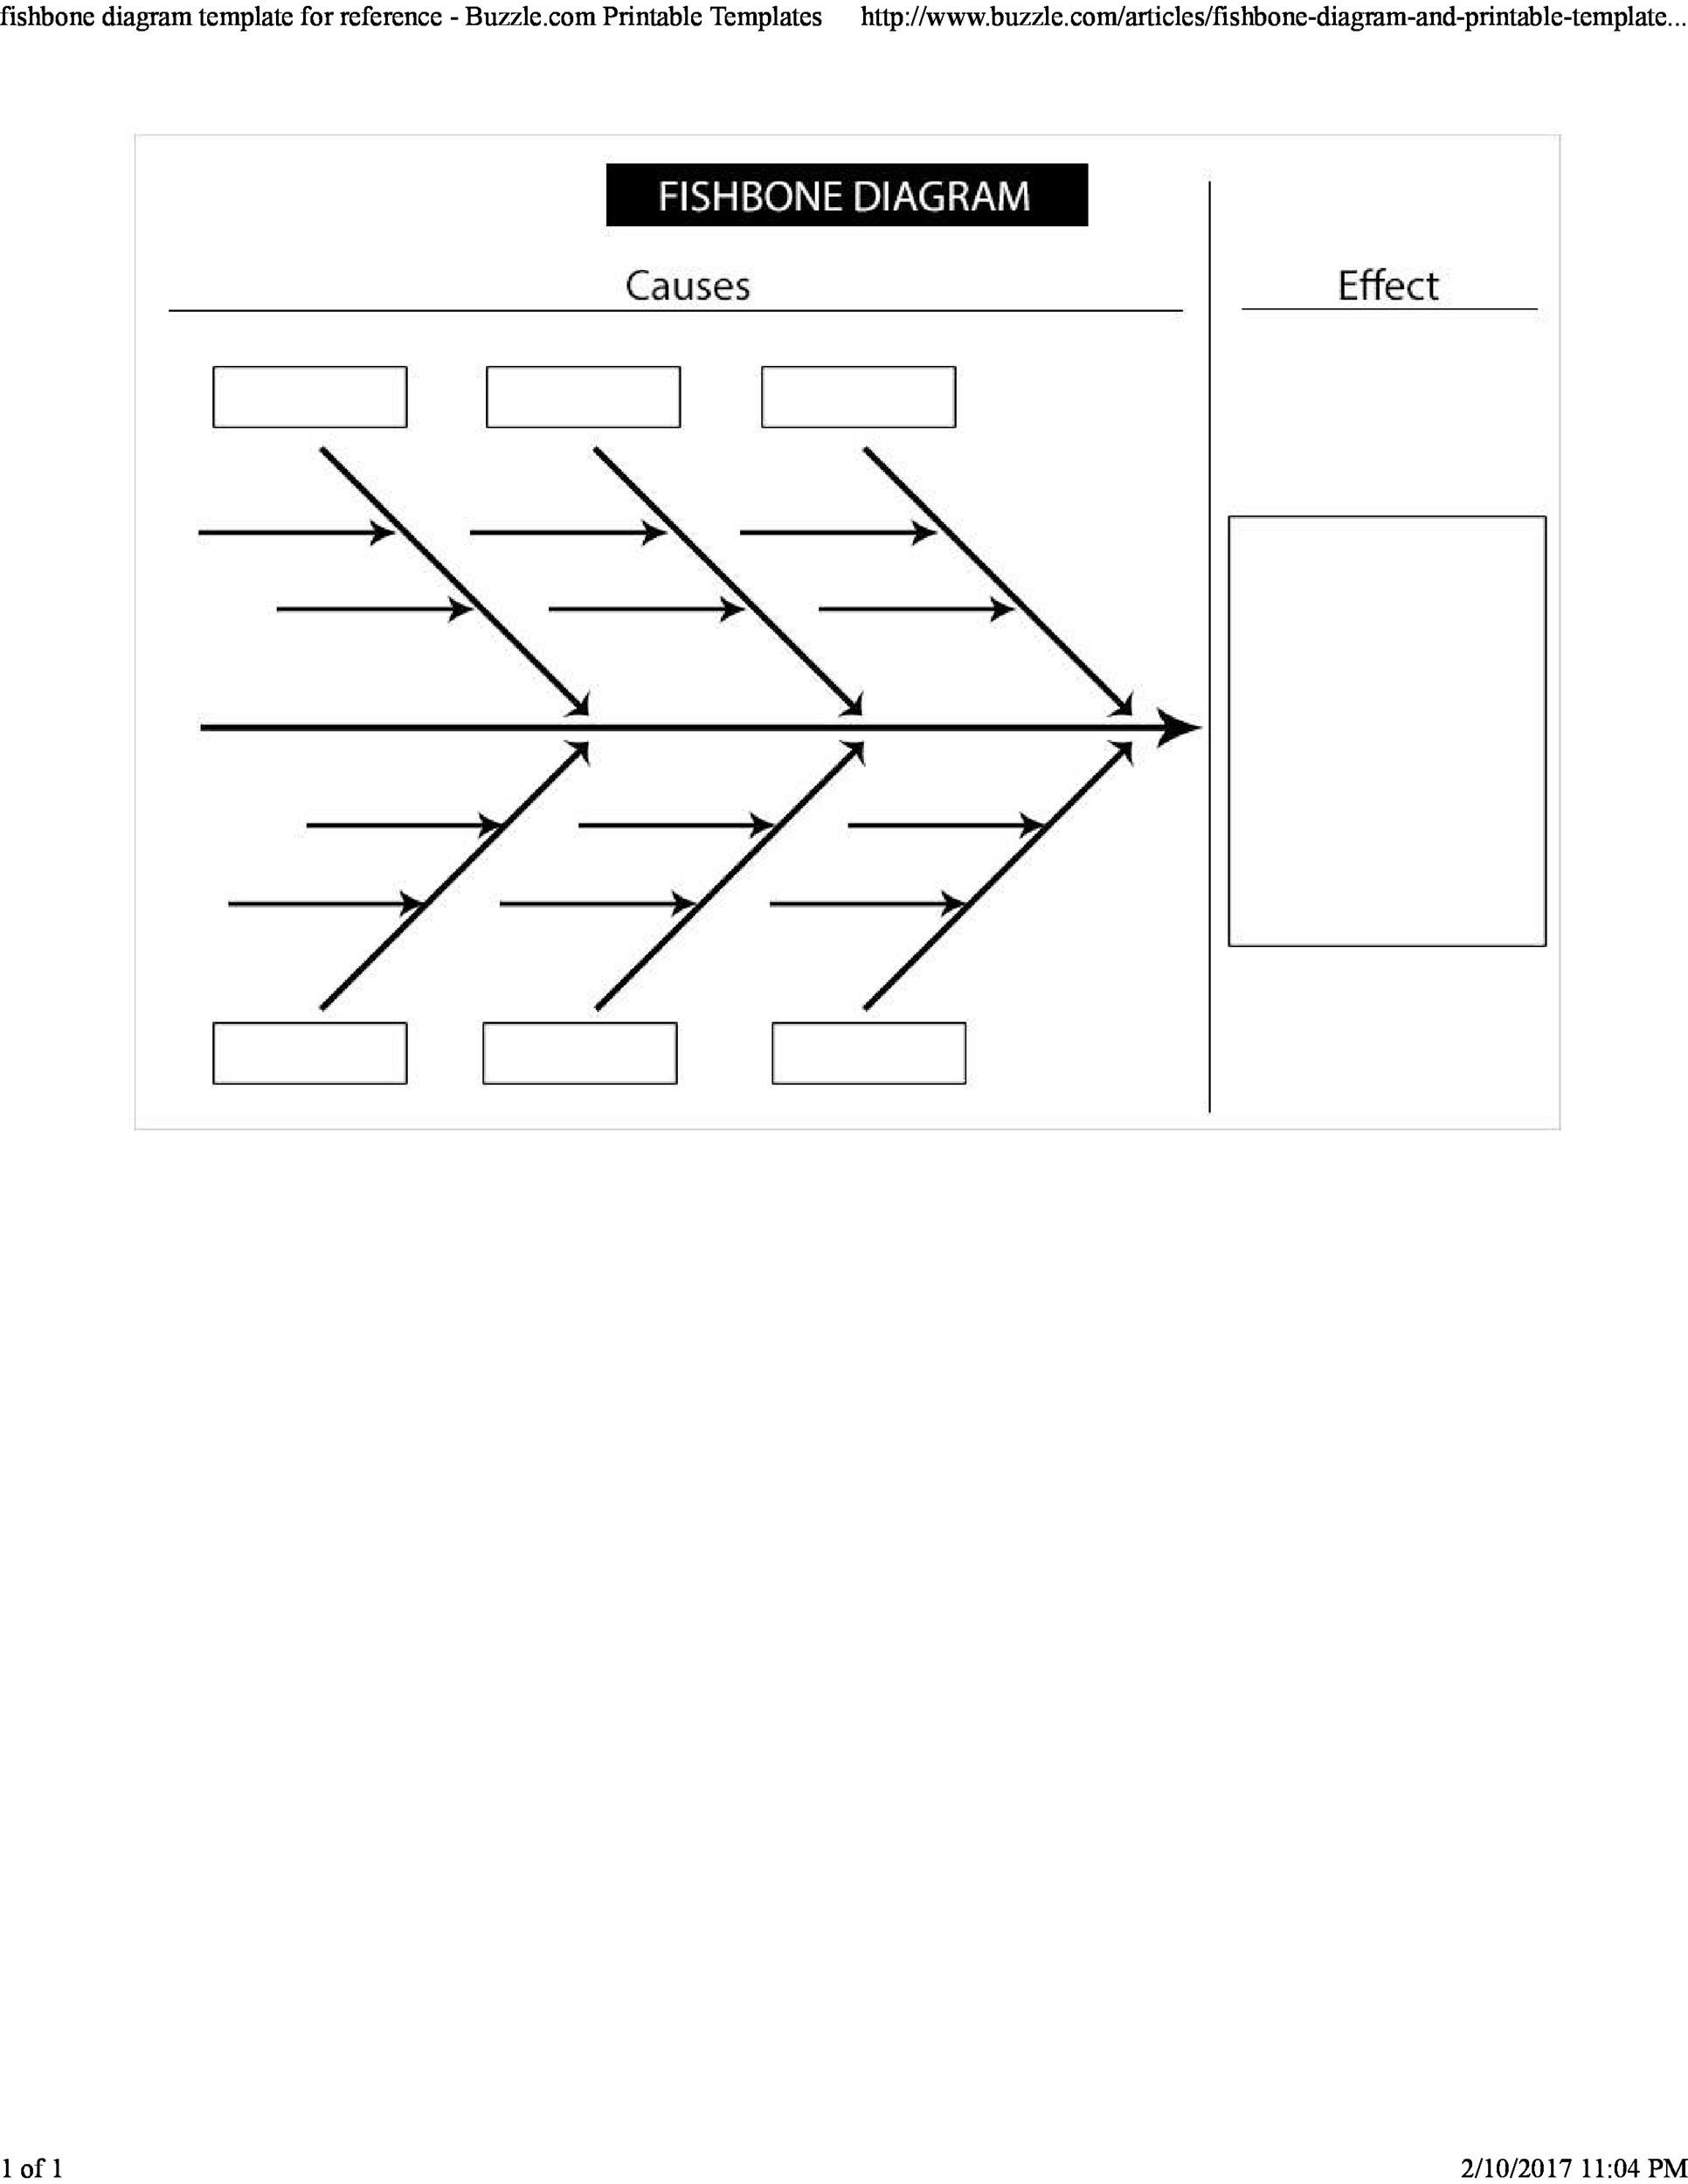 ishikawa fishbone diagram template ford focus door parts 43 great templates examples word excel free 19